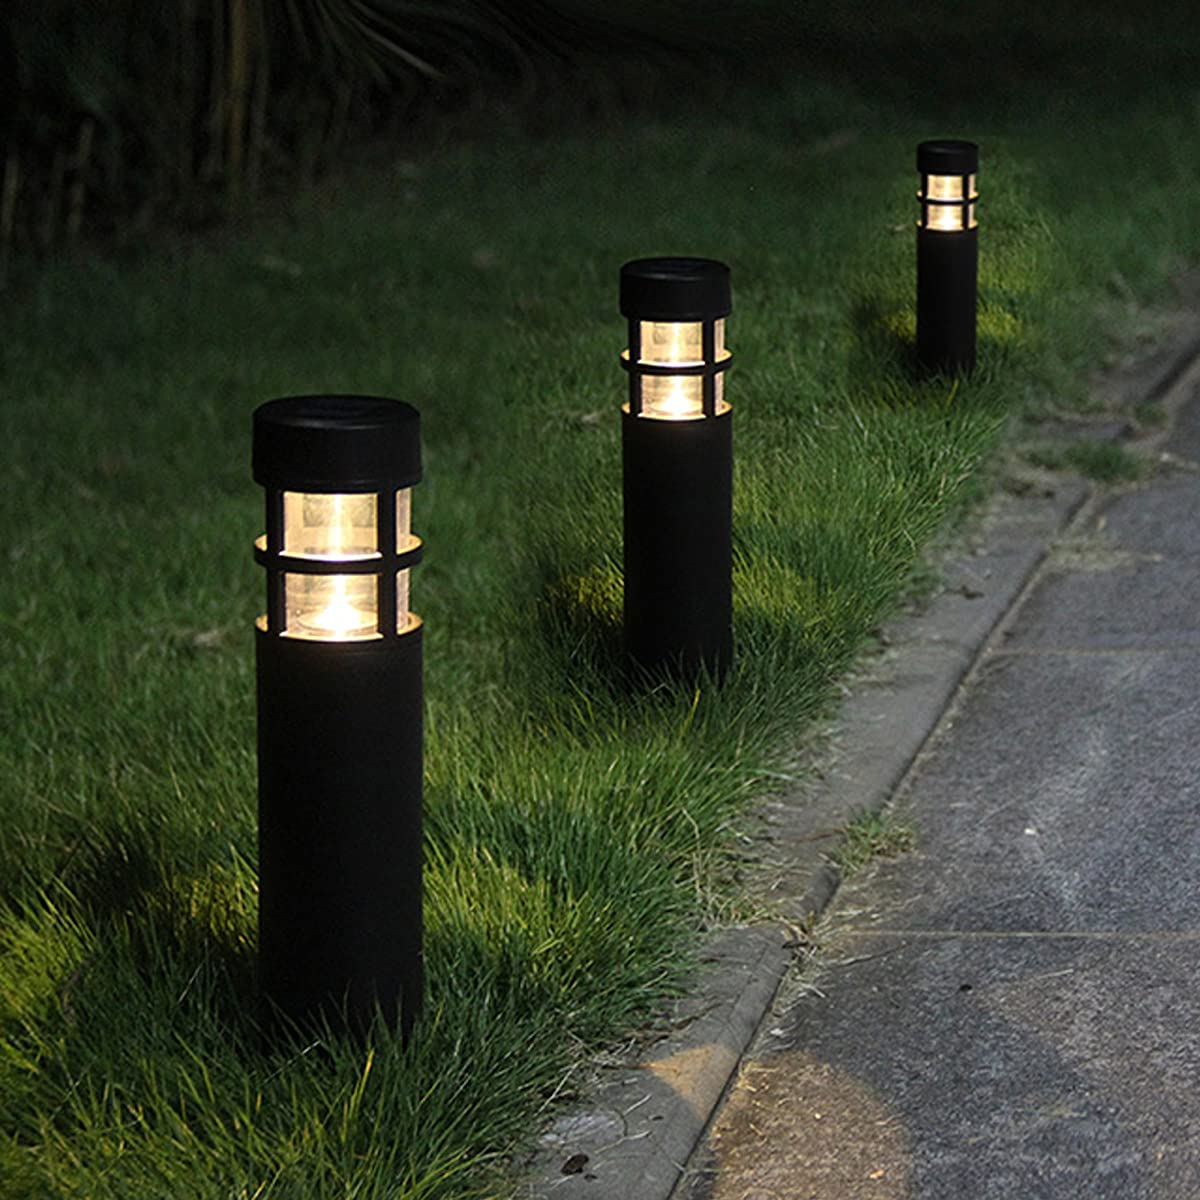 Voona Solar Bollard Lights Outdoor 6 Pack Garden Led